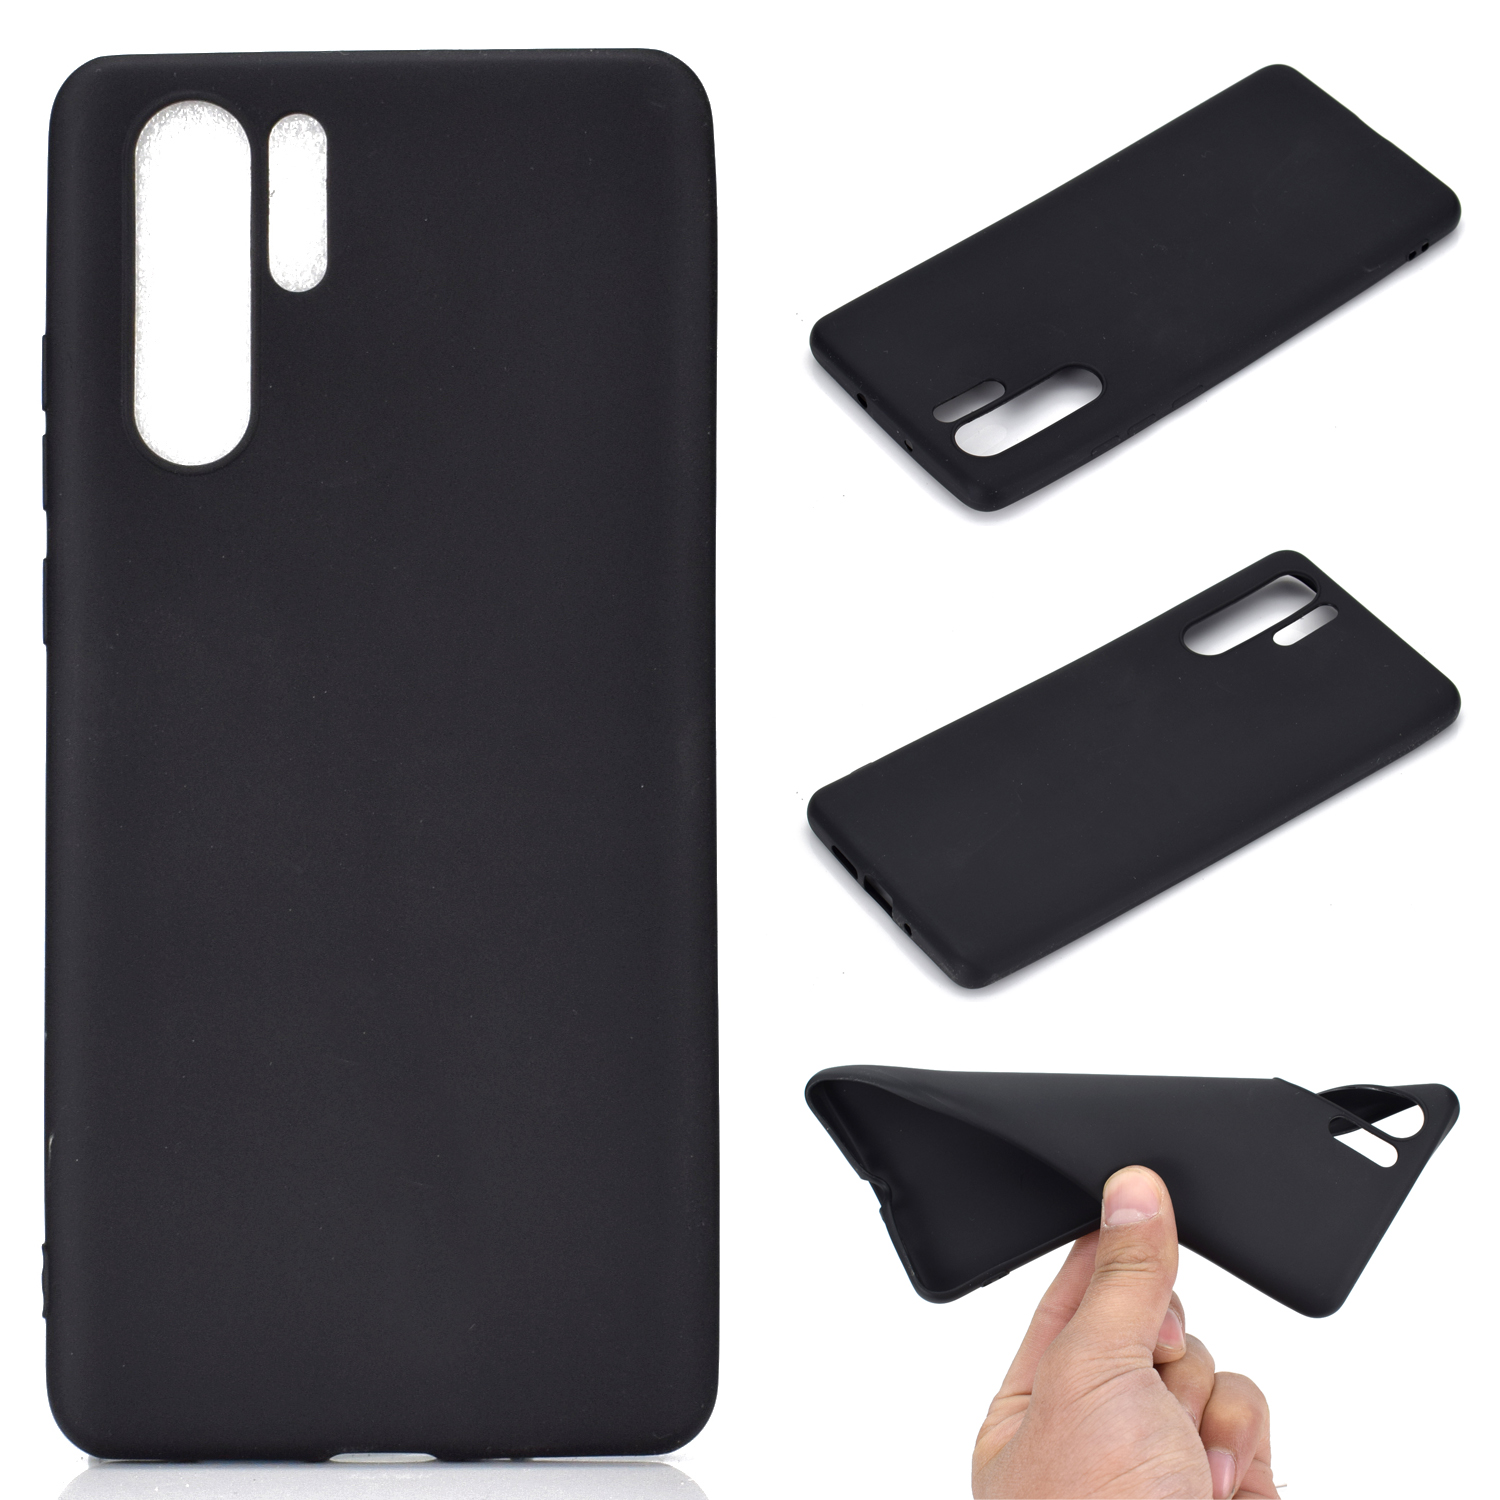 HUAWEI P30 pro Lovely Candy Color Matte TPU Anti-scratch Non-slip Protective Cover Back Case black